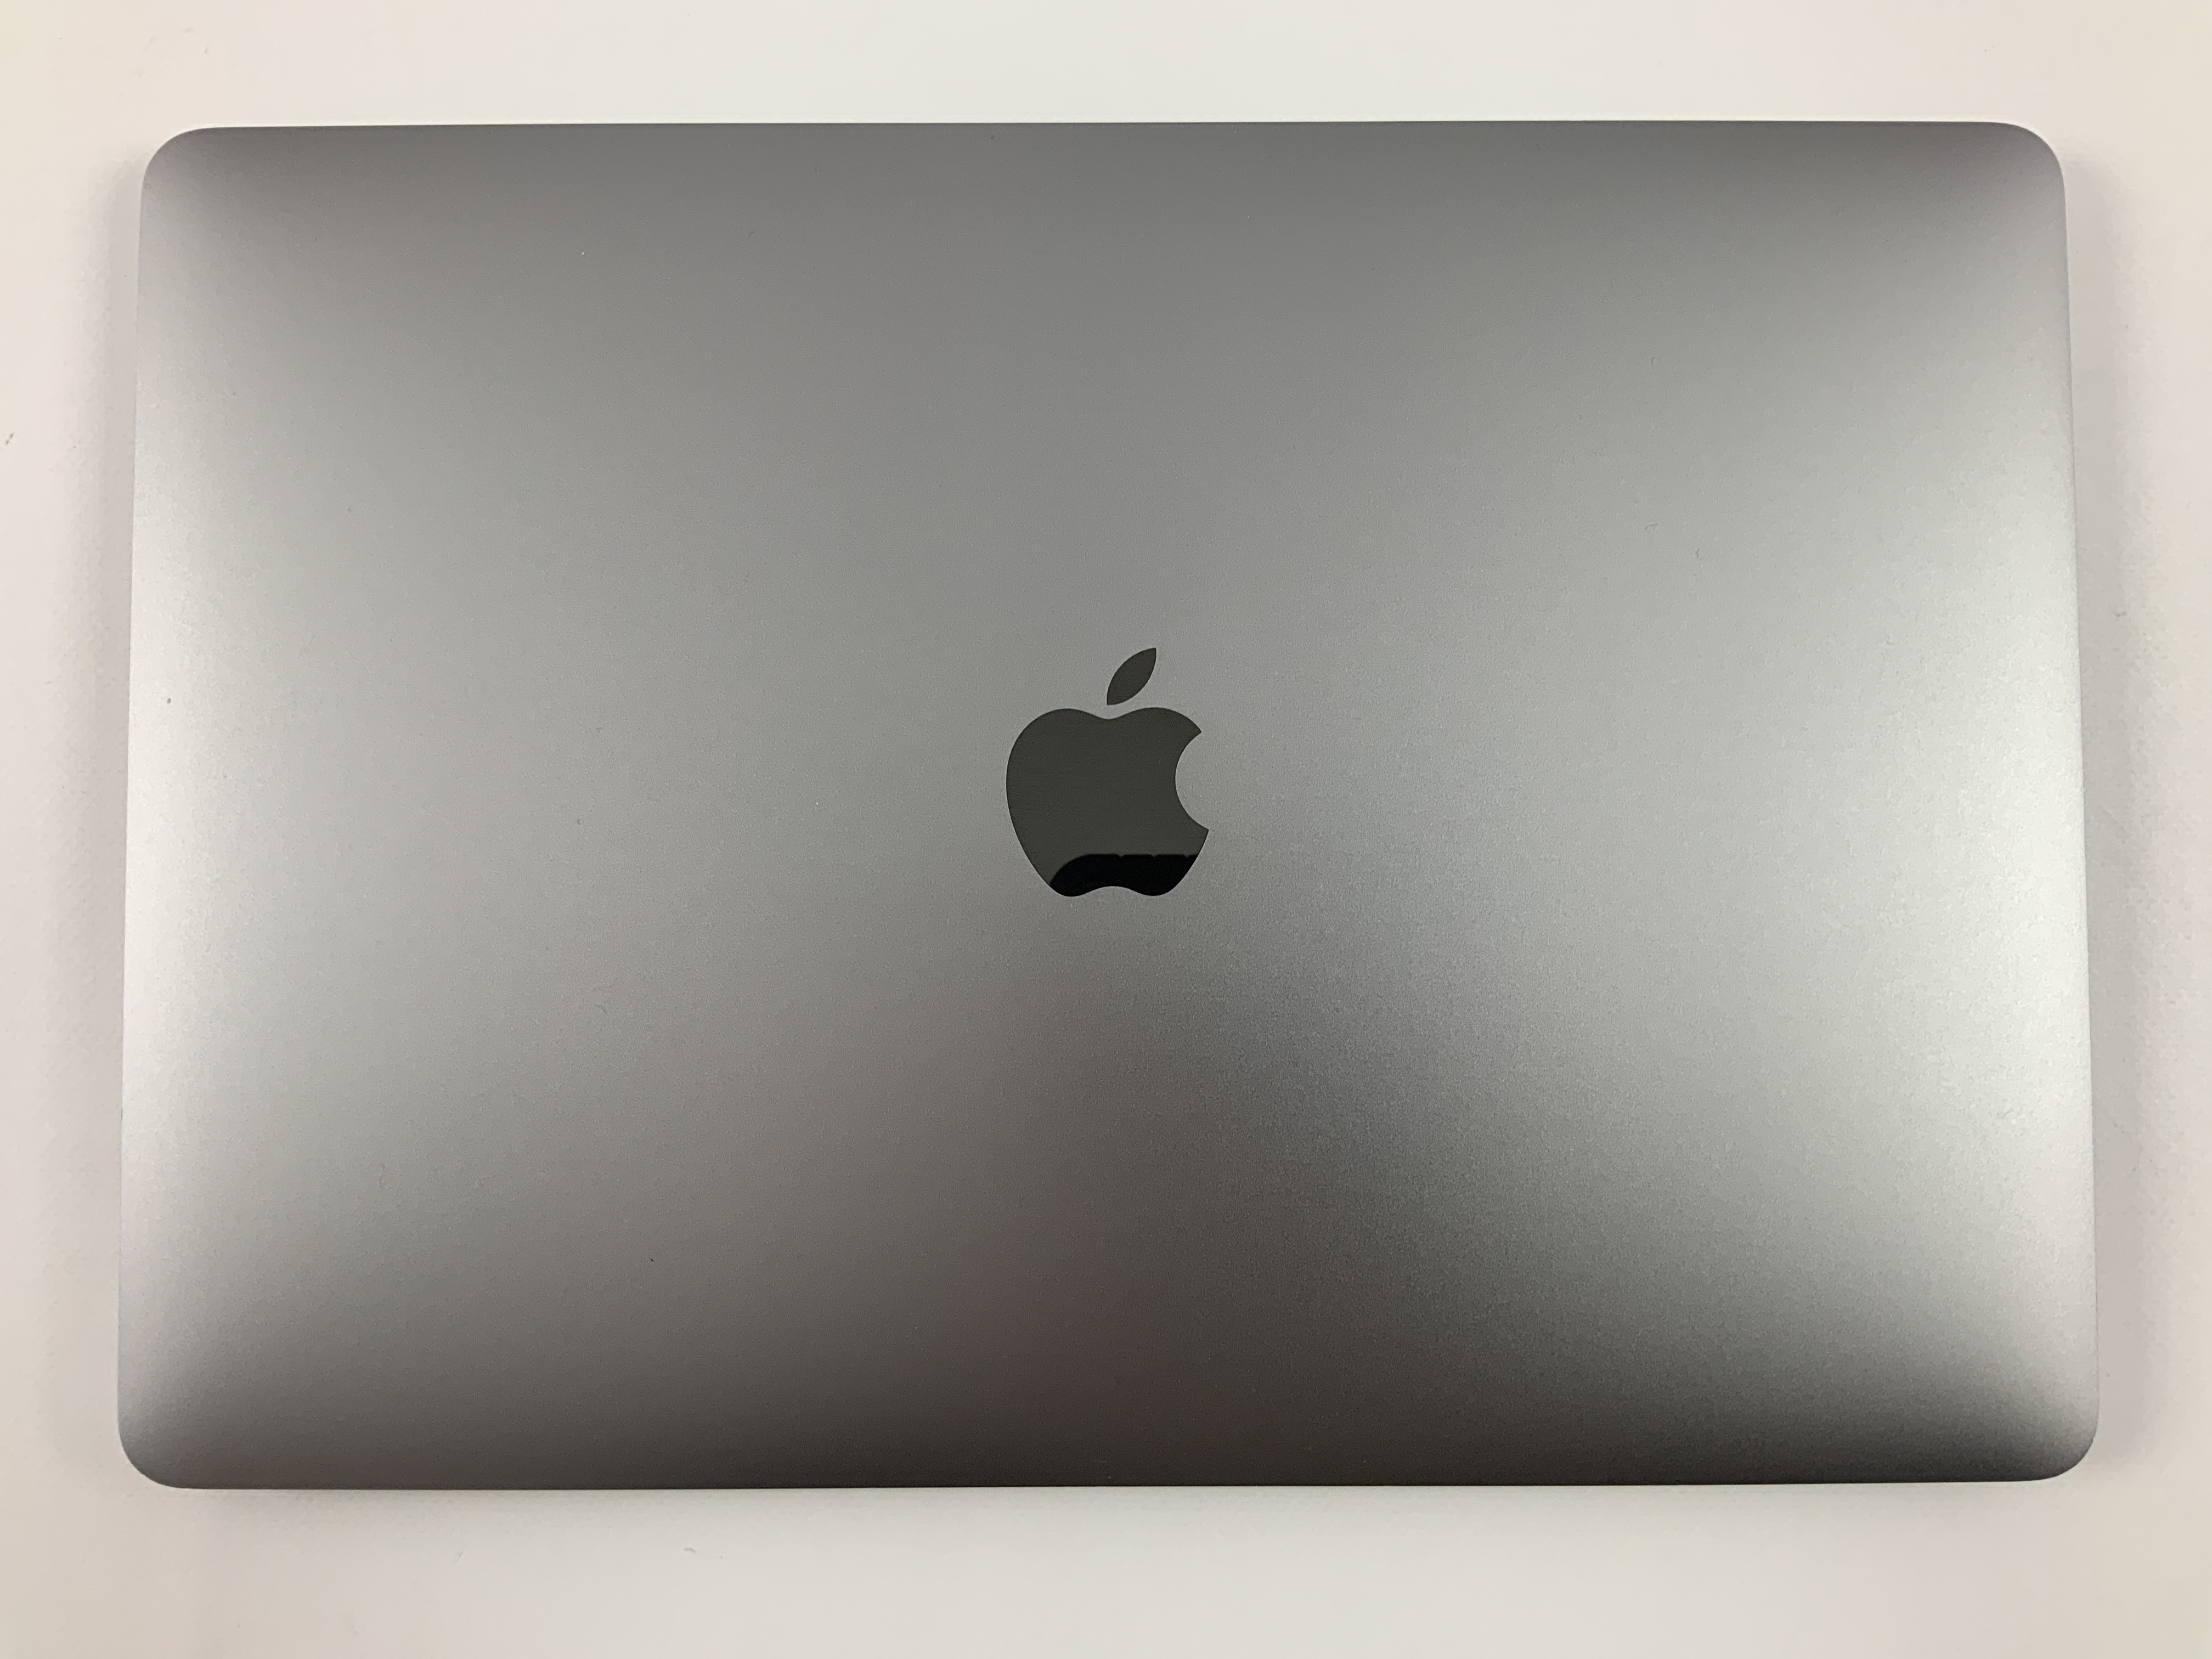 "MacBook Pro 13"" 4TBT Mid 2017 (Intel Core i5 3.1 GHz 8 GB RAM 256 GB SSD), Space Gray, Intel Core i5 3.1 GHz, 8 GB RAM, 256 GB SSD, imagen 2"